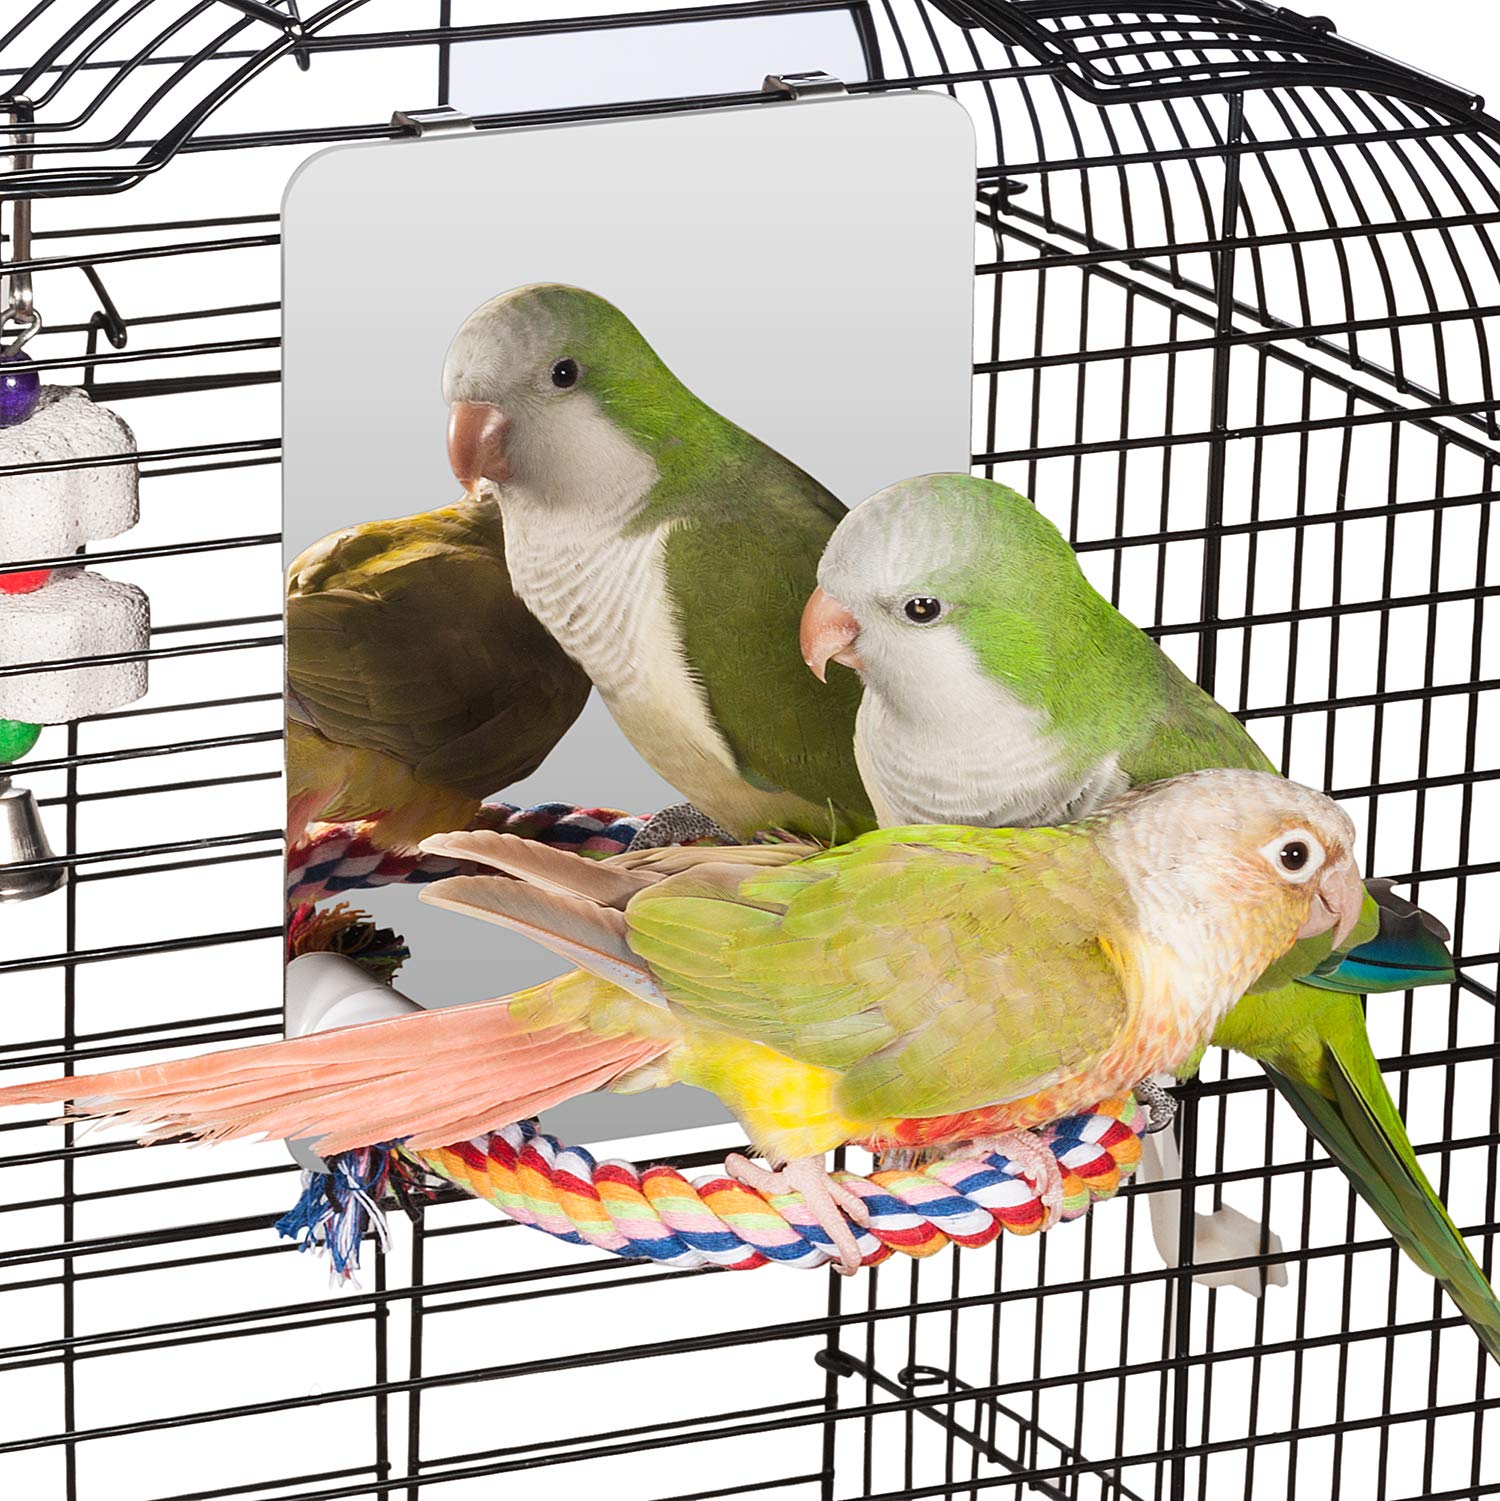 Colorday 7 inch Stainless Steel Bird Mirror with Rope Perch, Bird Toys Swing, Comfy Perch for African Grey Parakeet Cockatiel Conure Lovebird Finch Canaries by Colorday